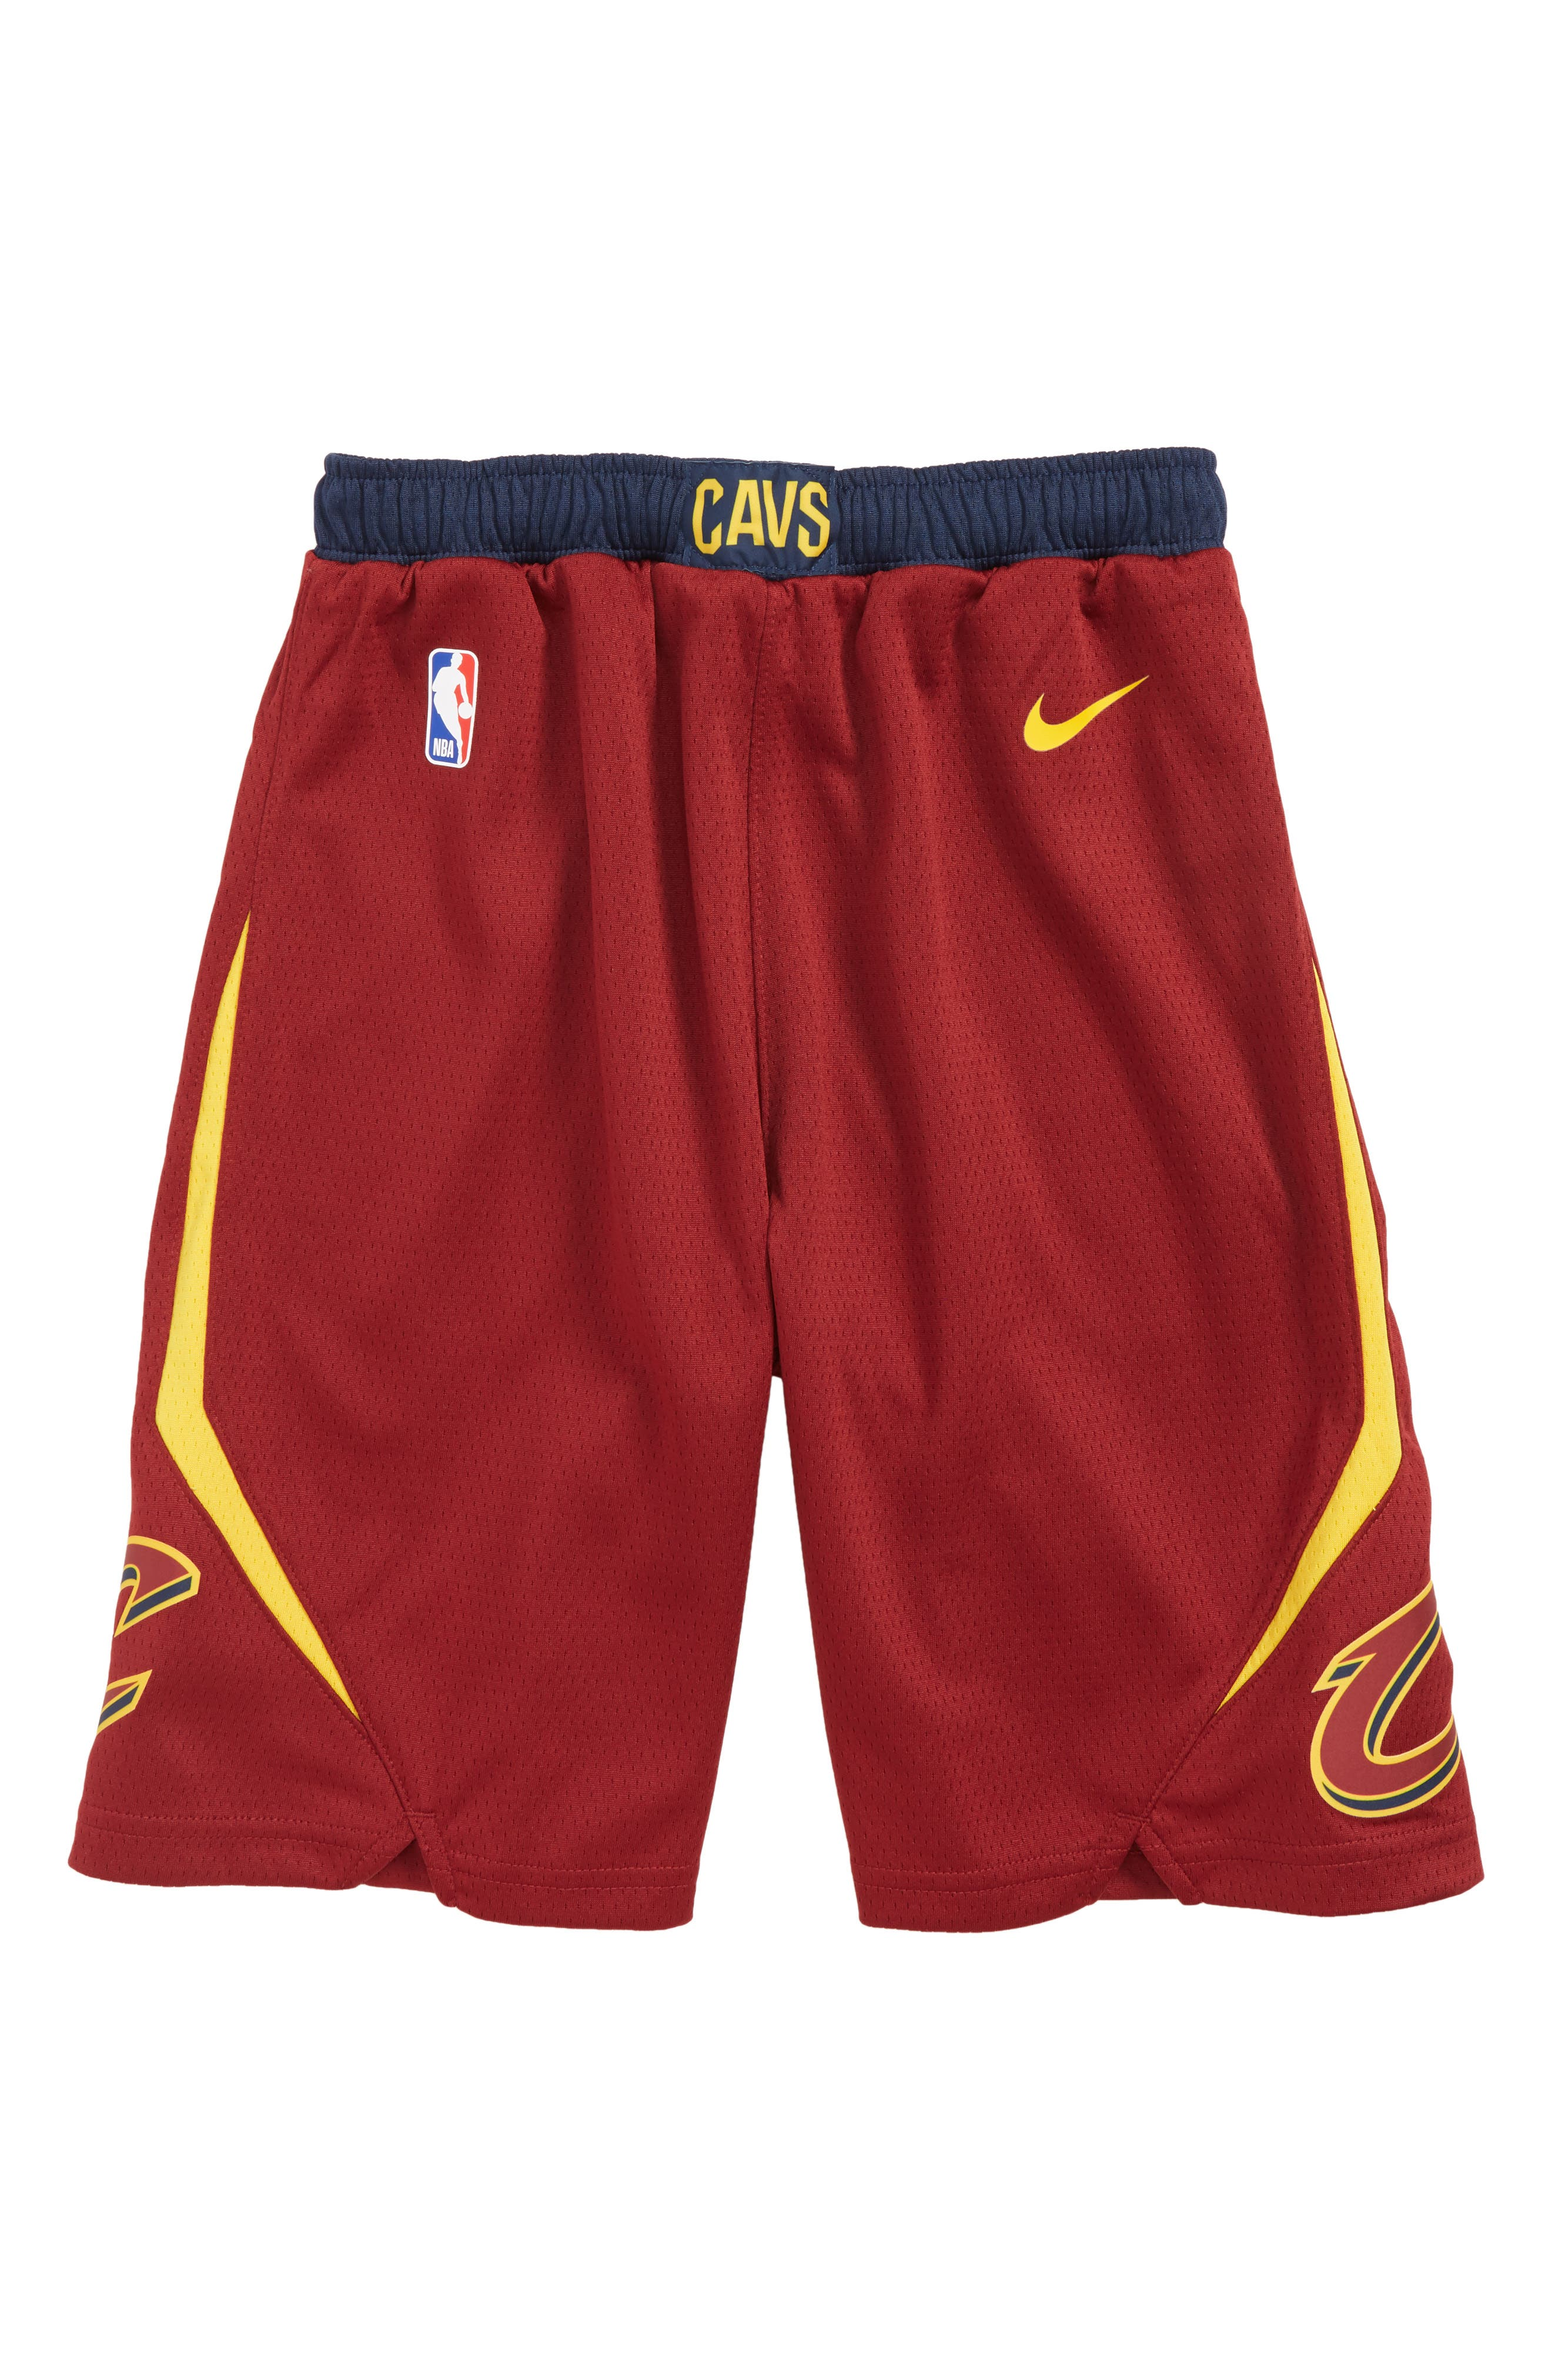 Cleveland Cavaliers Basketball Shorts,                             Main thumbnail 1, color,                             TEAM RED